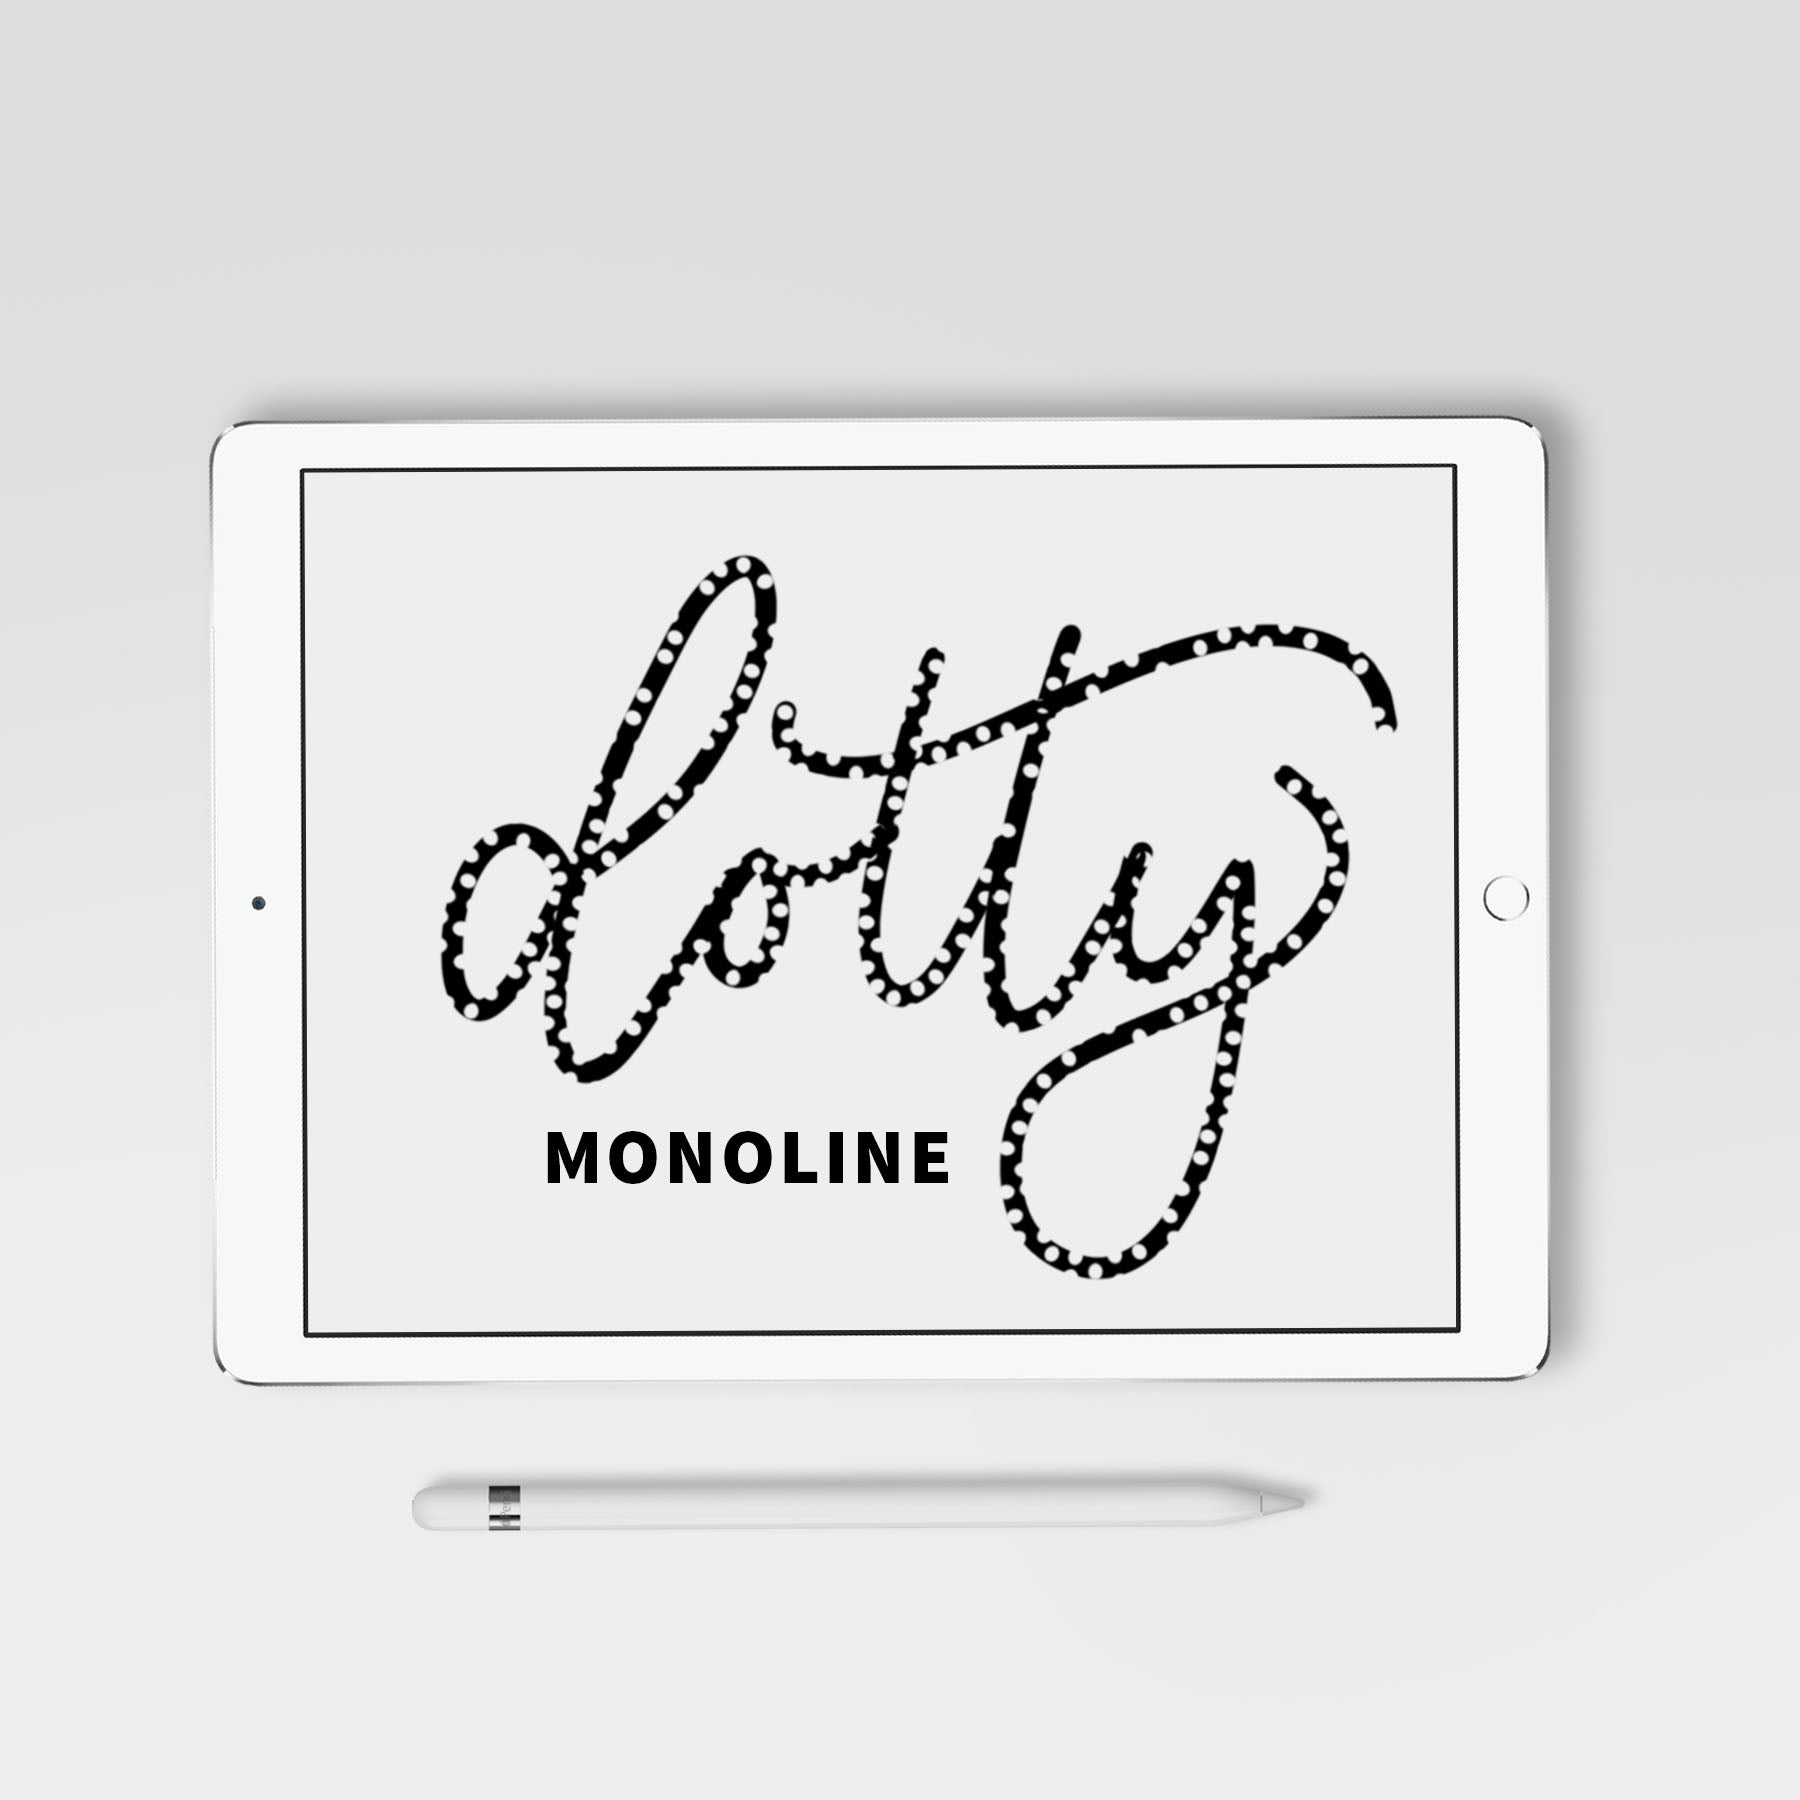 Dotty Monoline Procreate Brush